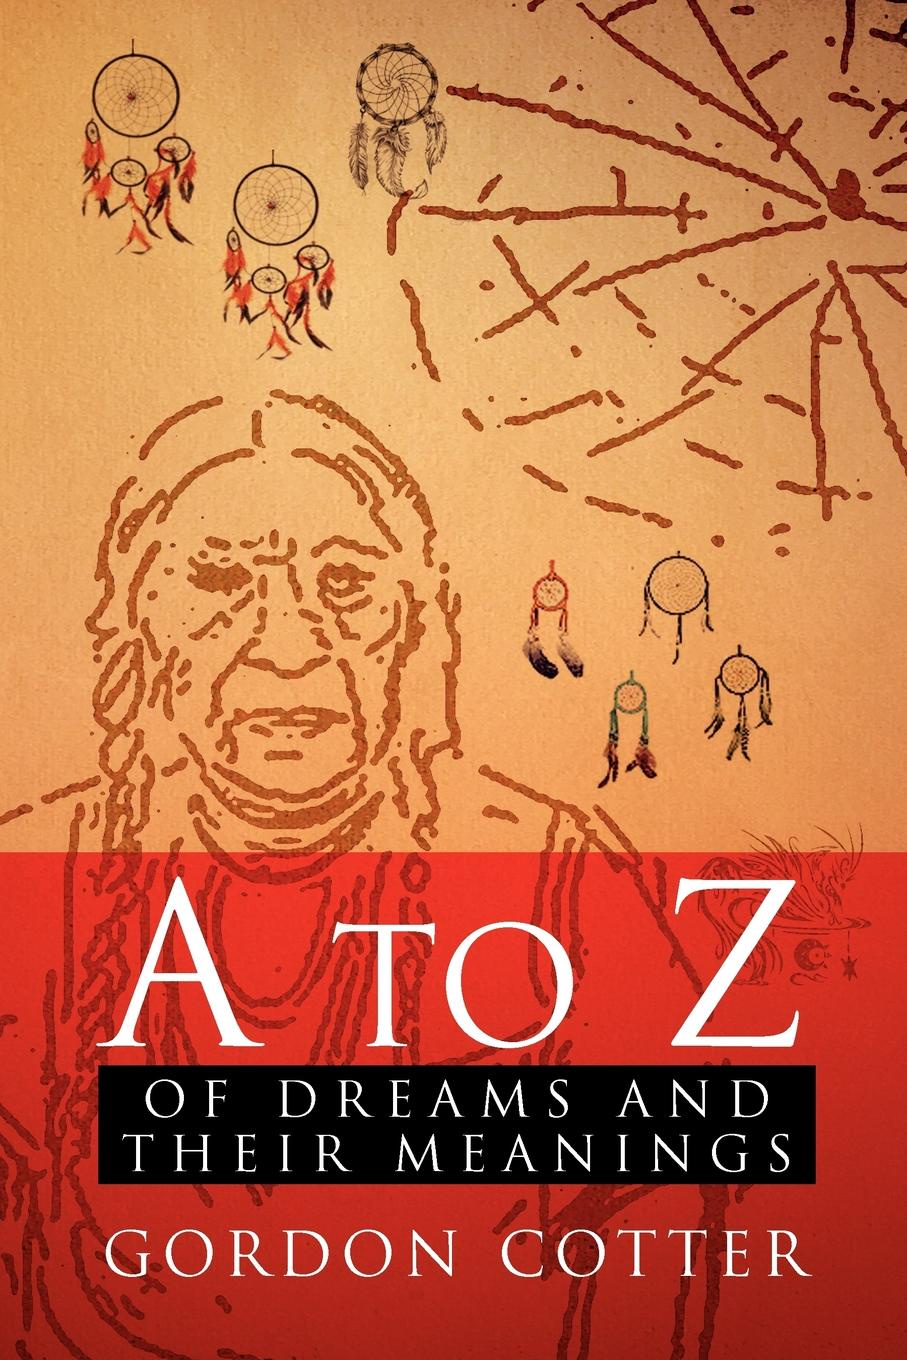 Gordon Cotter A to Z of Dreams and Their Meanings